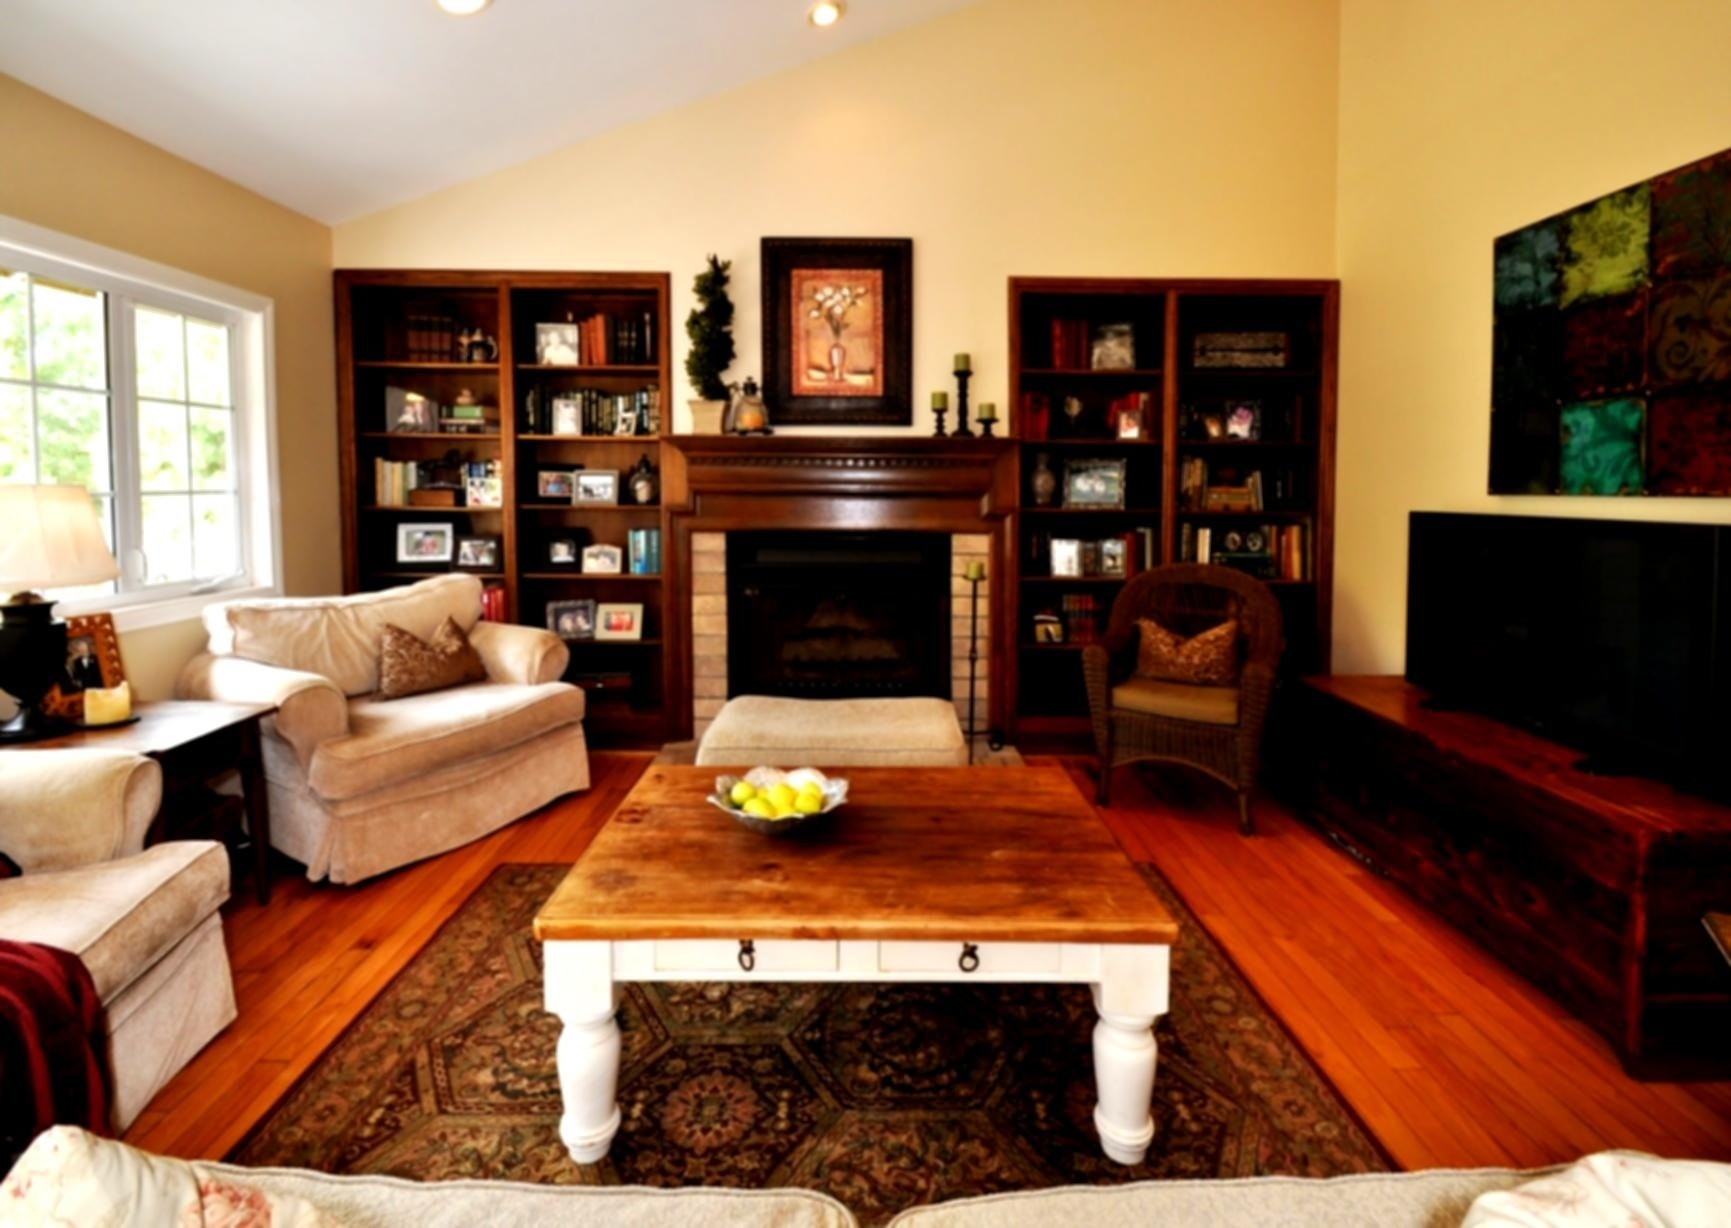 10 Trendy Family Room Ideas With Tv family room ideas with fireplace living design rustic large small